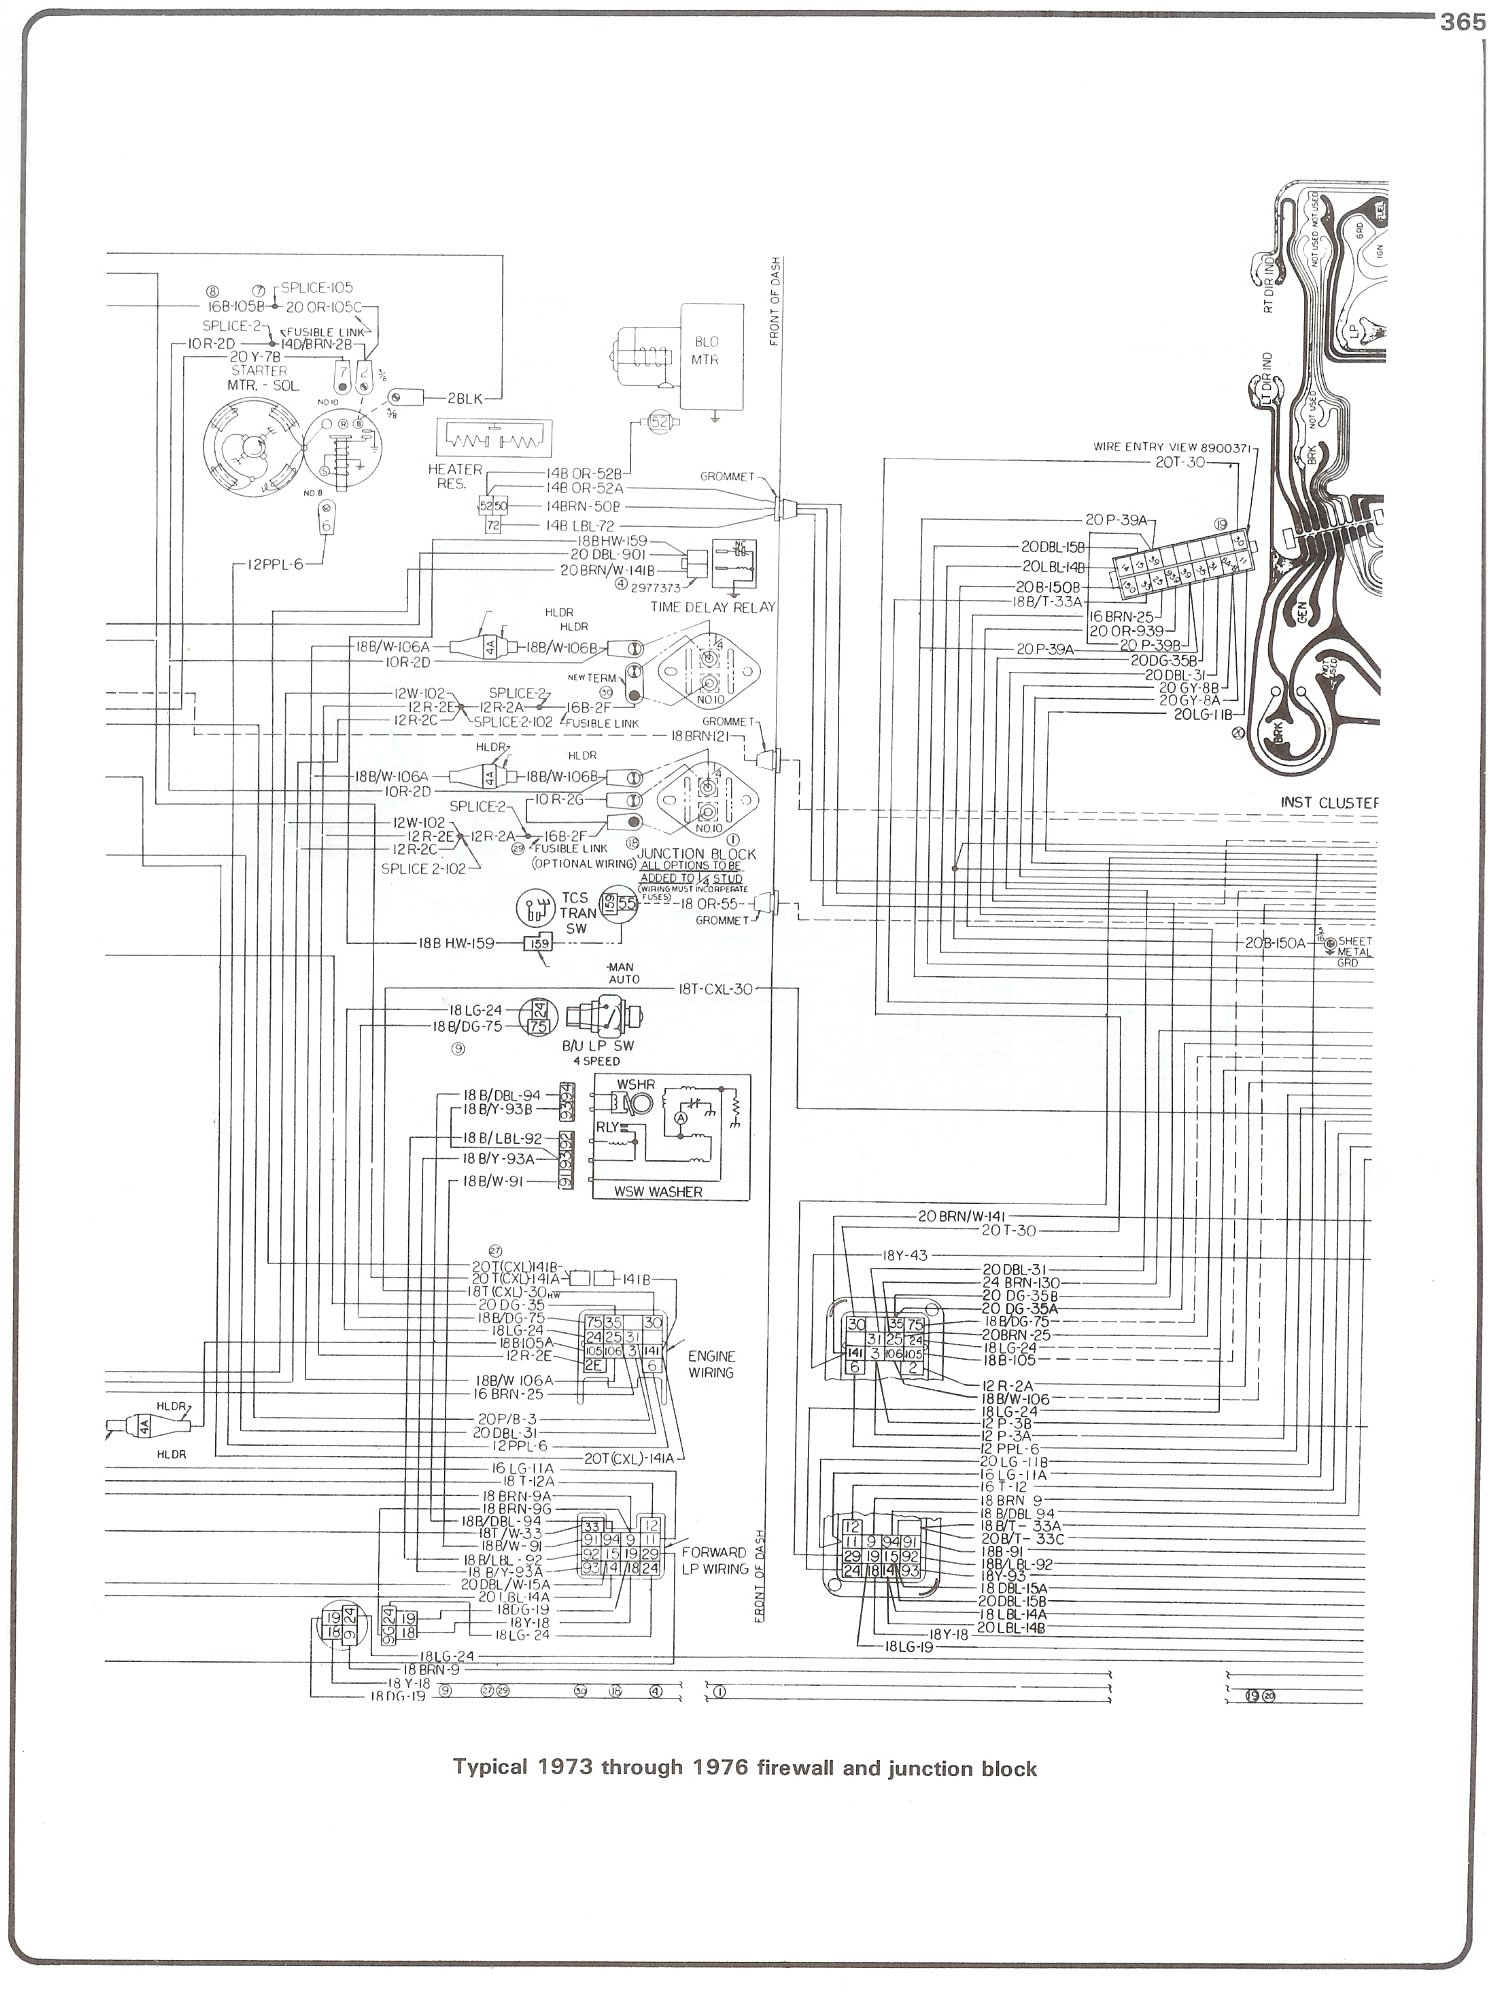 72 Chevy C10 Engine Wiring Diagram